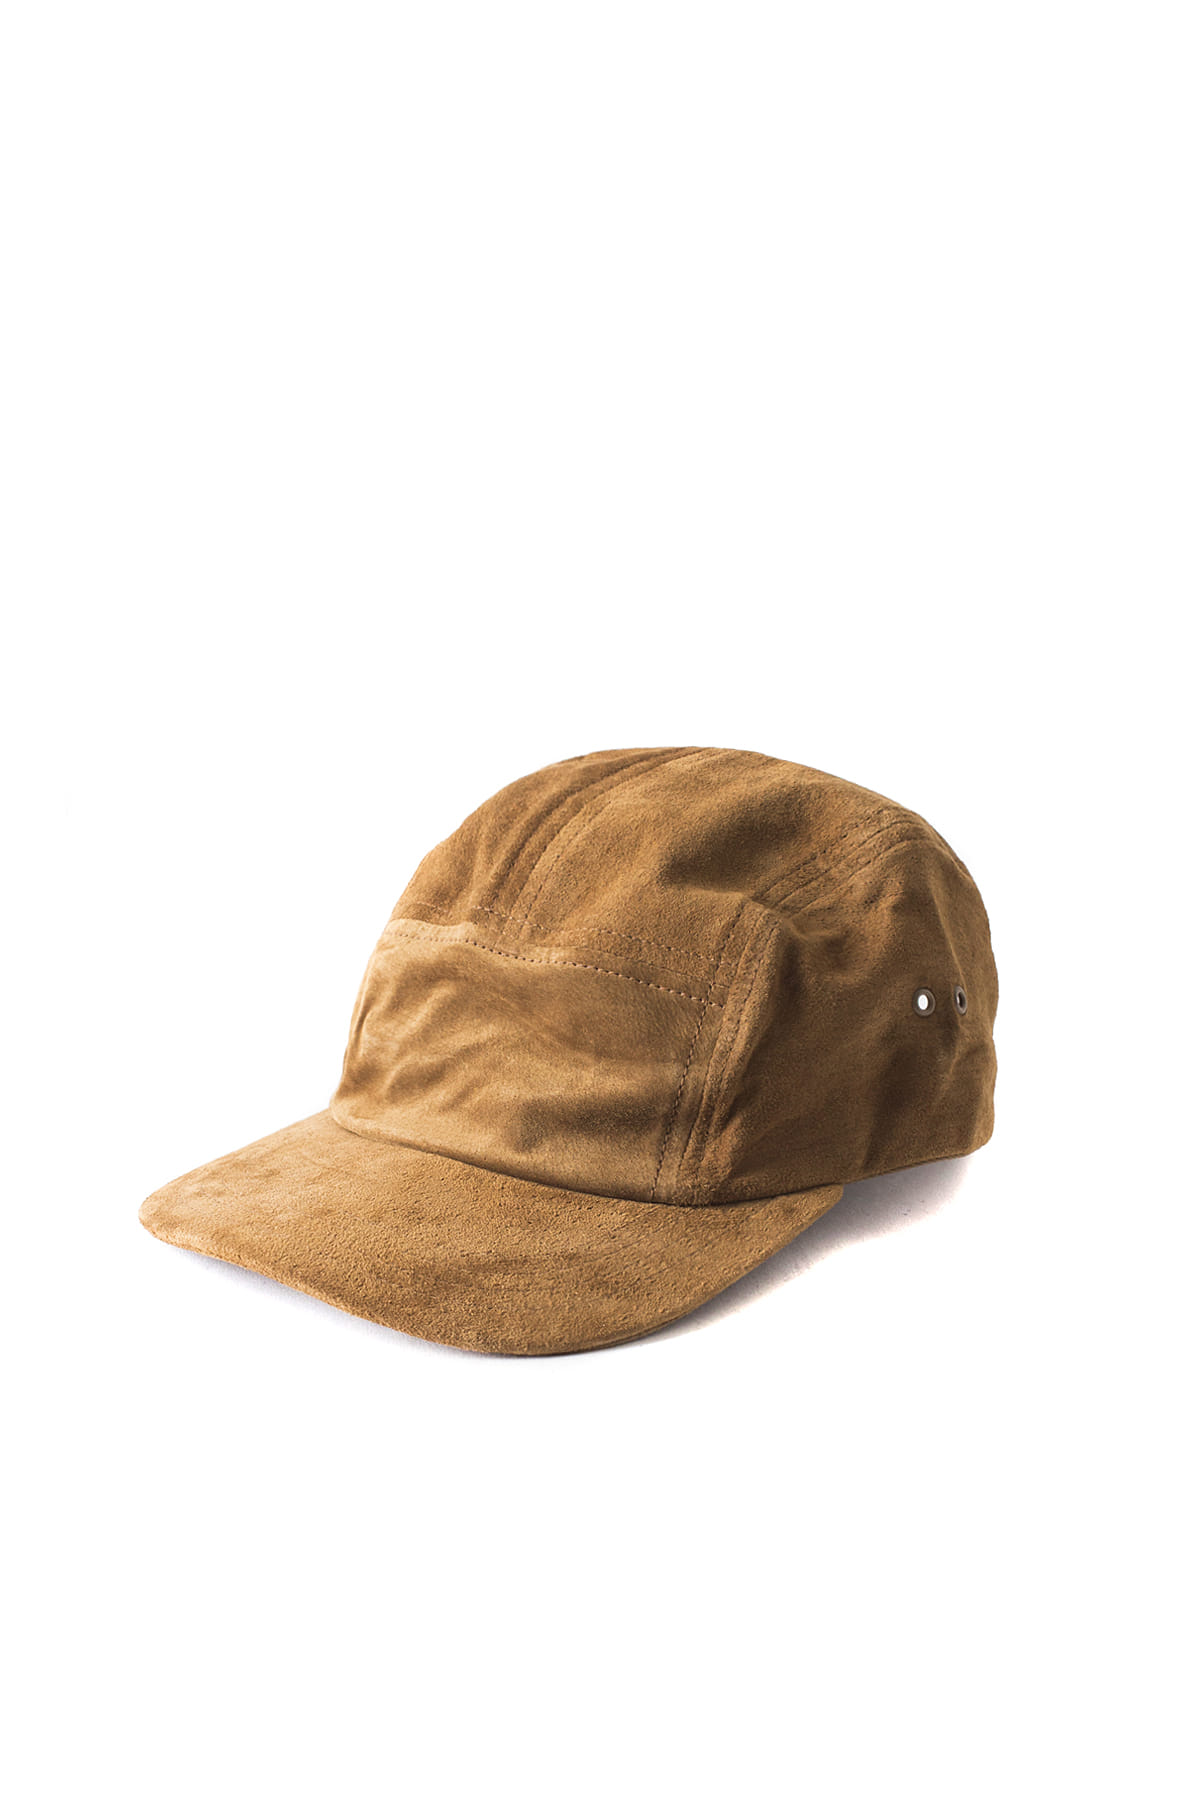 Hender Scheme : Water Proof Pig Jet Cap (Brown)